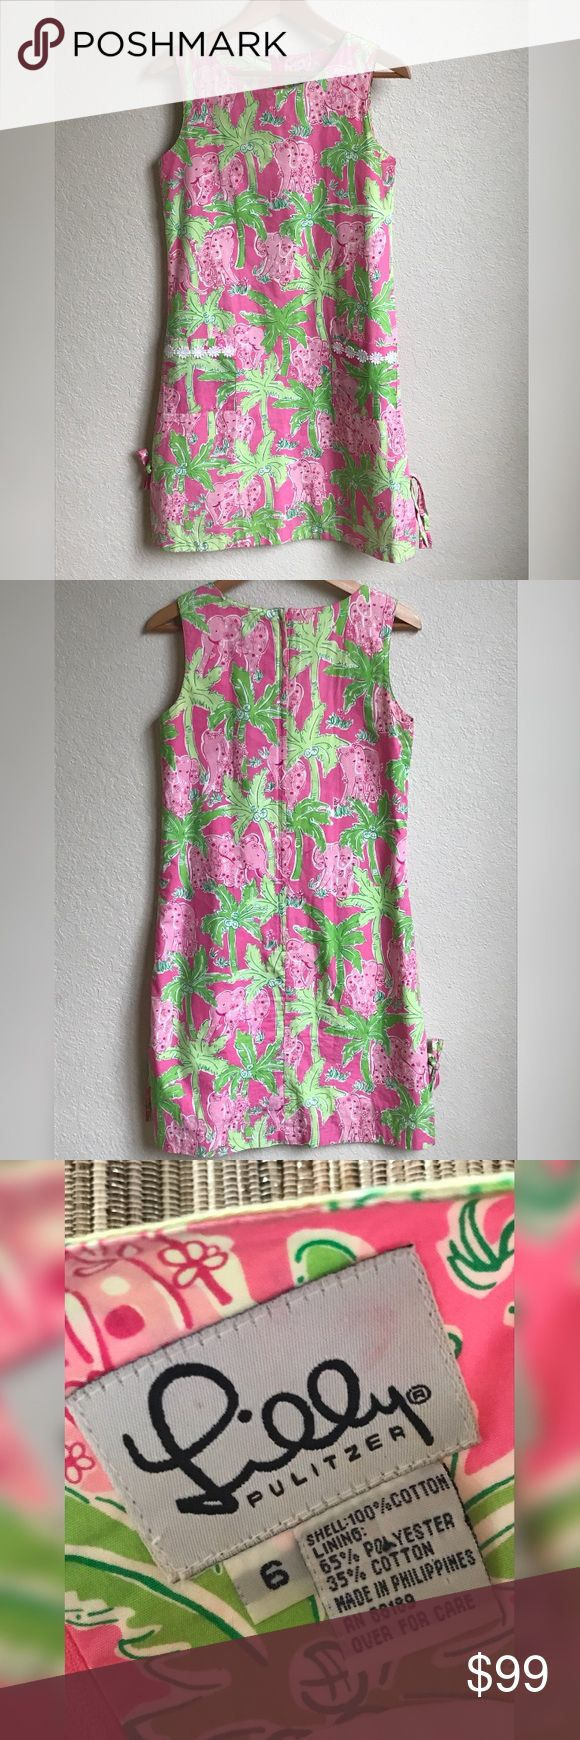 "Lilly Pulitzer Shift Dress Taboo Green Pink Print Lilly Pulitzer Shift Dress in the Taboo print, size 6.  Lace detail on pocket and under hem, fully lined. Zipper has been tested and is functioning without issue. Hook and eye closure at top of zip back. The tag has a trace of red ink, and the front of the dress has a few tiny holes (pictured). Underarm to underarm 16.5"" and total length 37"".  Please see photos for exact details and ask any questions prior to purchase.  Make an offer! Lilly…"